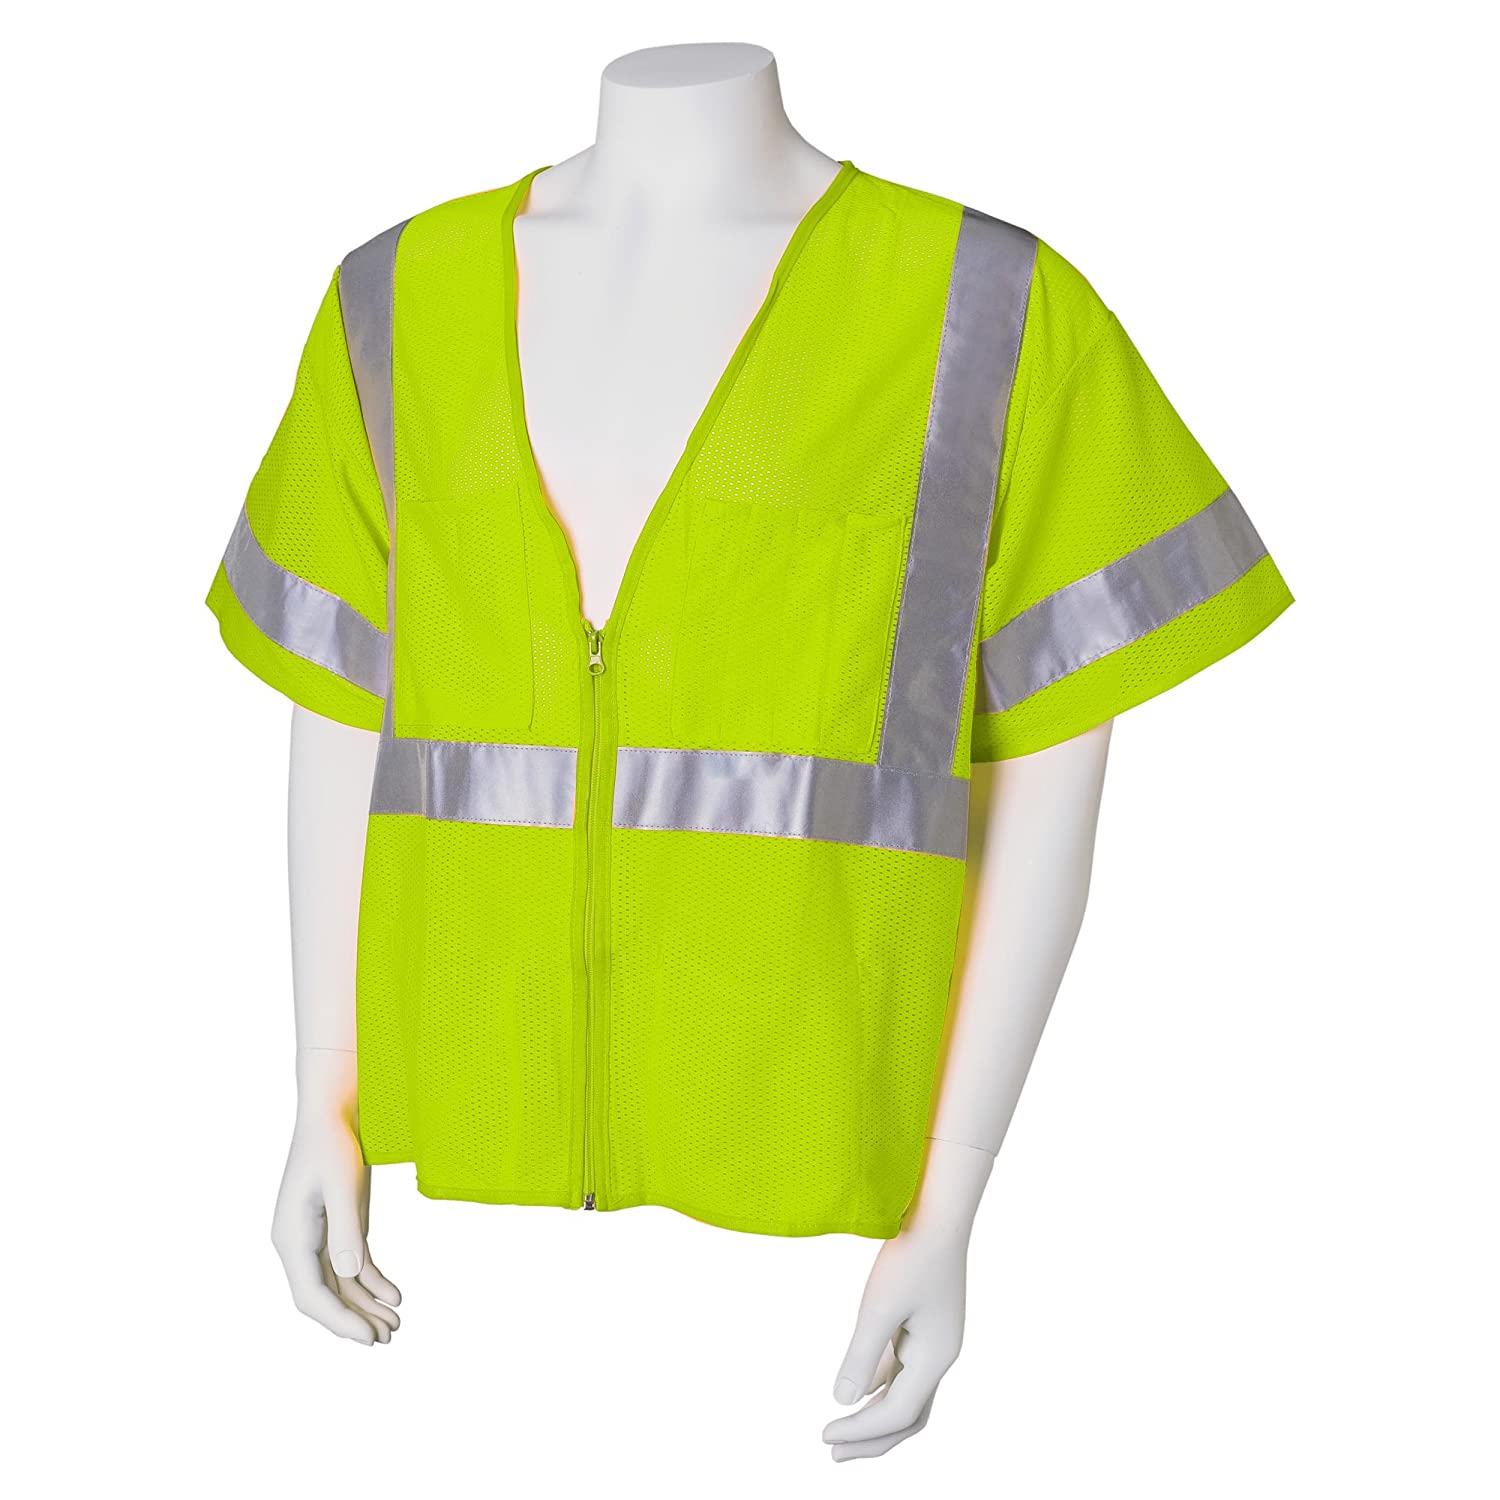 Jackson Safety ANSI Class 3 Deluxe Style Polyester Safety Vest with Lime Prismatic Kimberly-Clark Professional